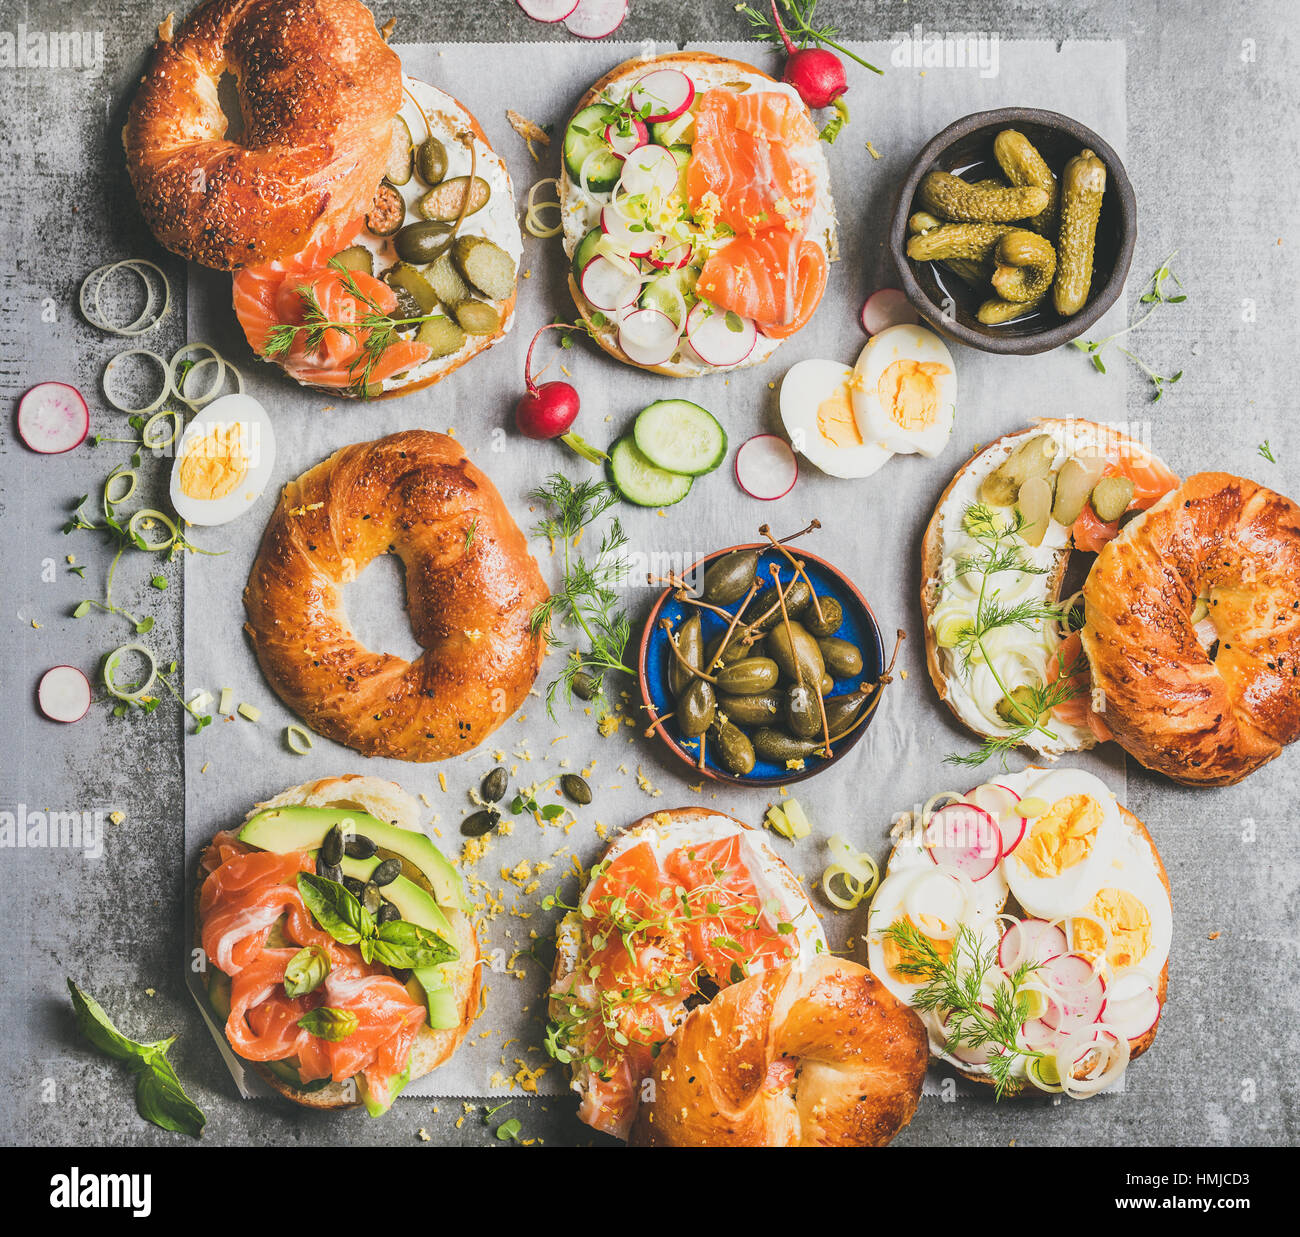 Variety of bagels with different fillings for breakfast or takeaway - Stock Image